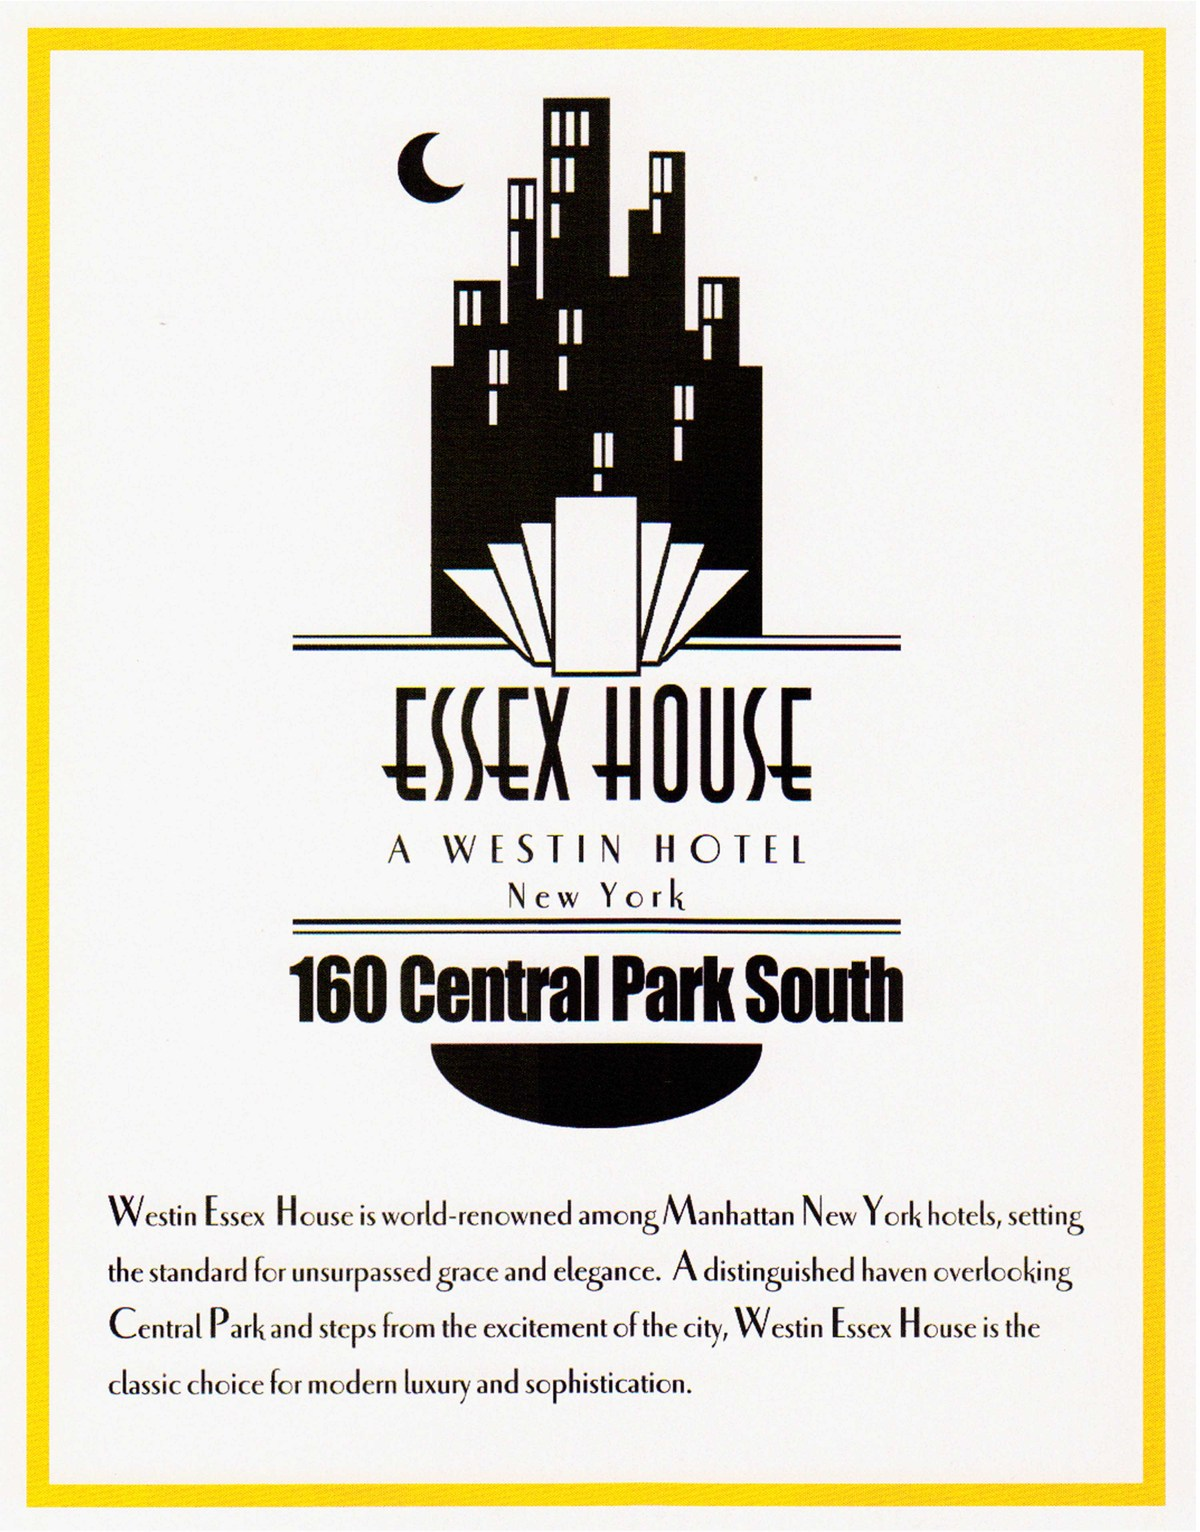 This piece is a magazine advertisement for the Essex House, a luxury hotel located in NYC.